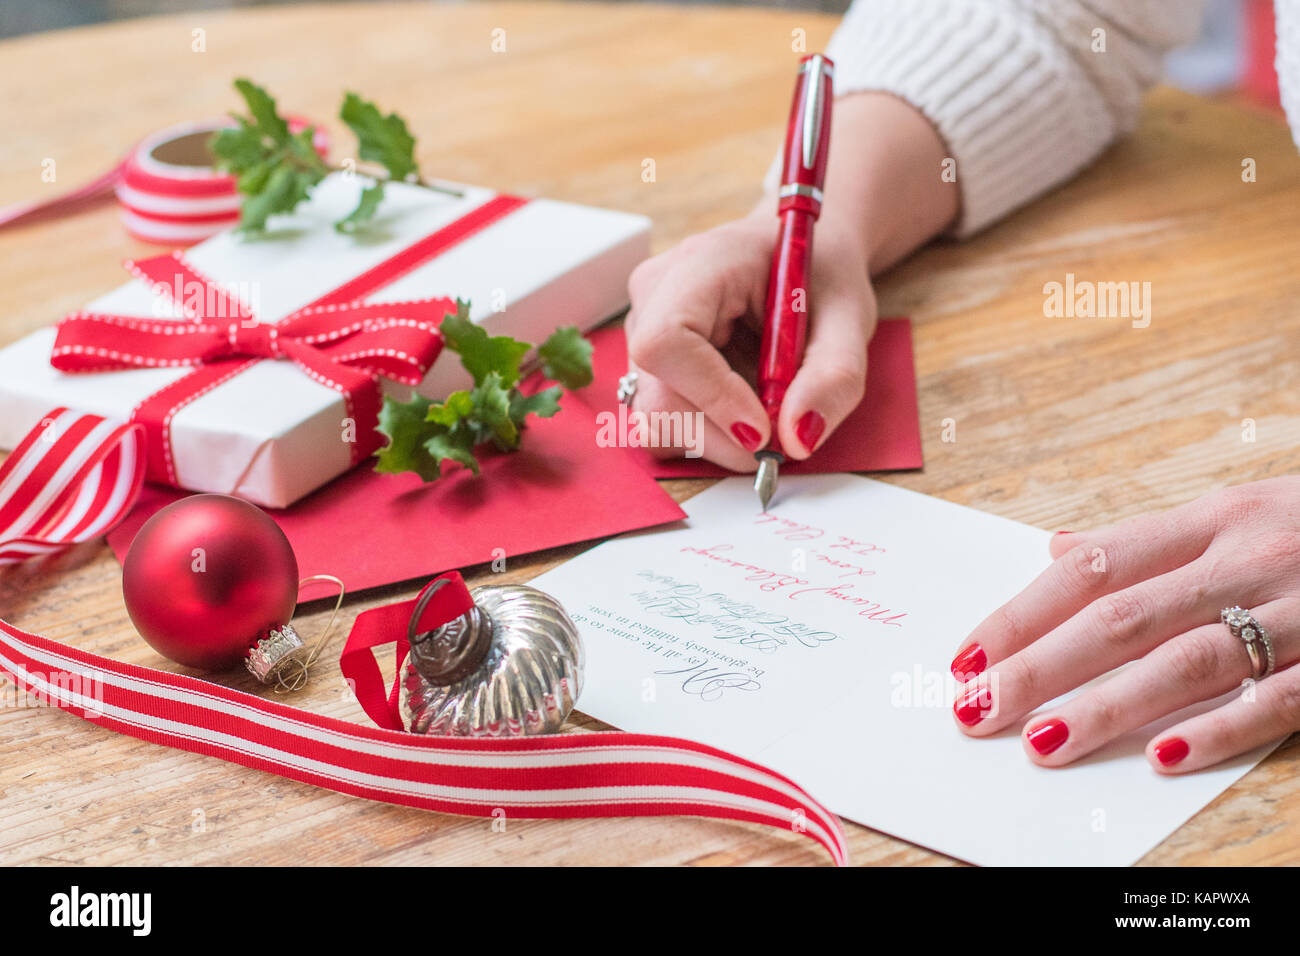 Young woman writing christmas cards with red nails a red pen and young woman writing christmas cards with red nails a red pen and holiday decorations on a wooden table m4hsunfo